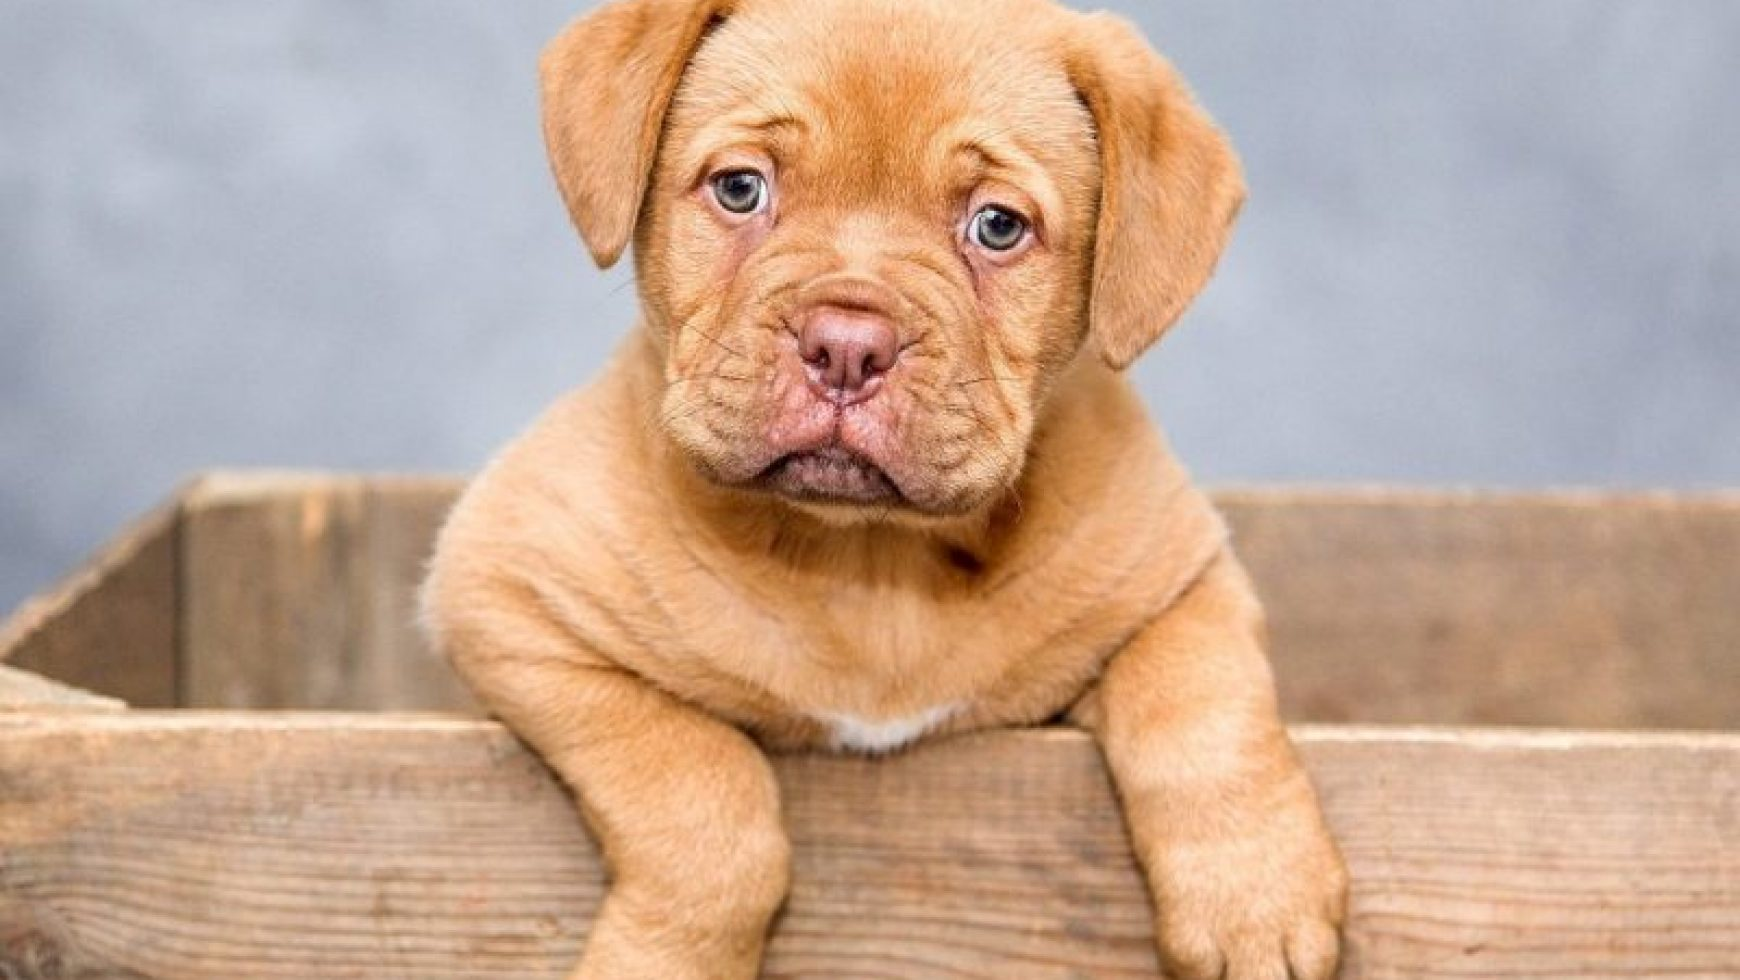 puppy constipation causes | how to relieve constipation in puppies